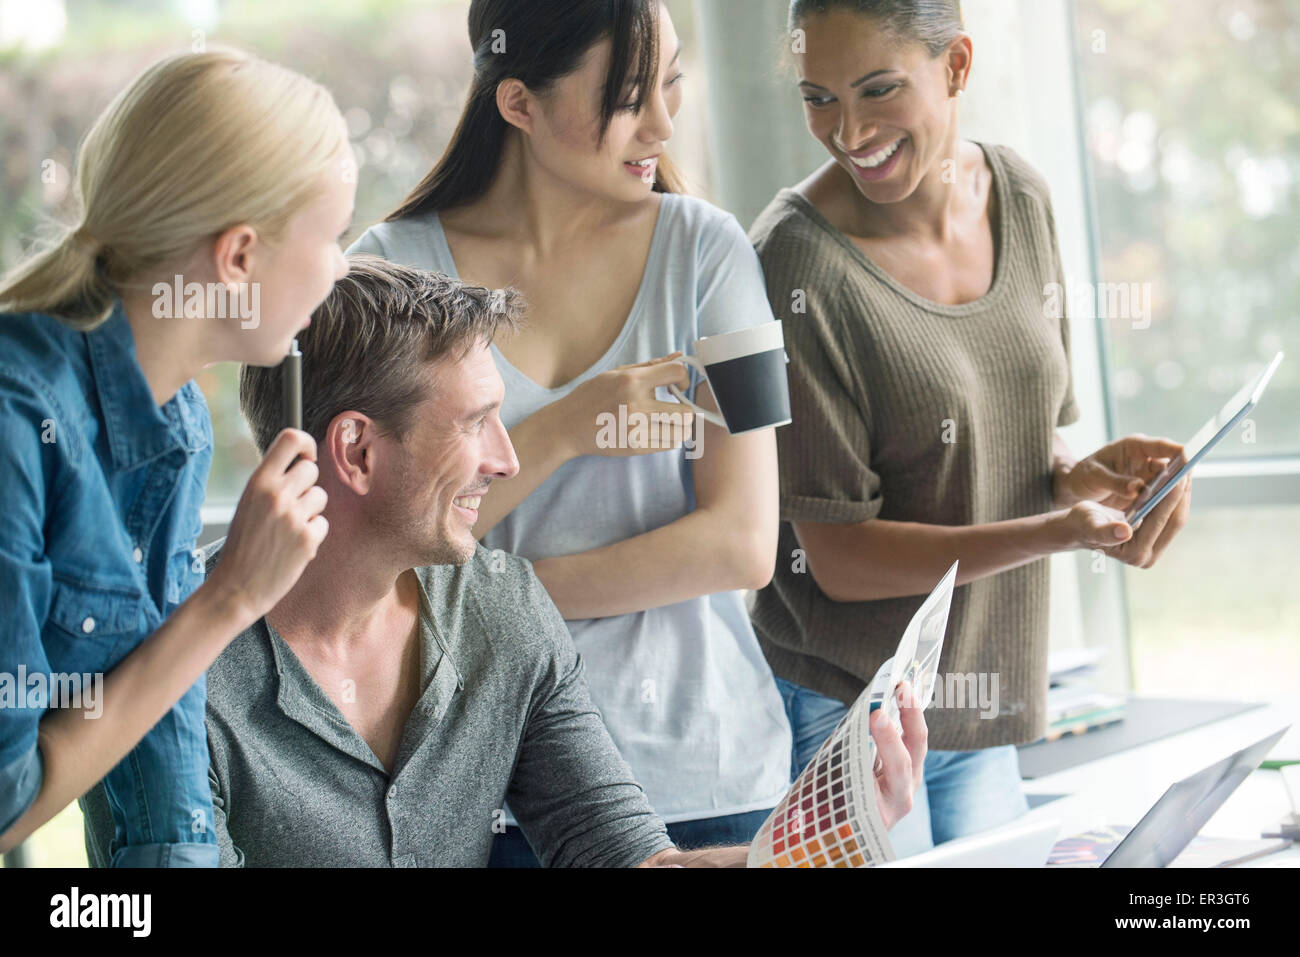 Colleagues having lighthearted time while browsing color swatch catalog - Stock Image